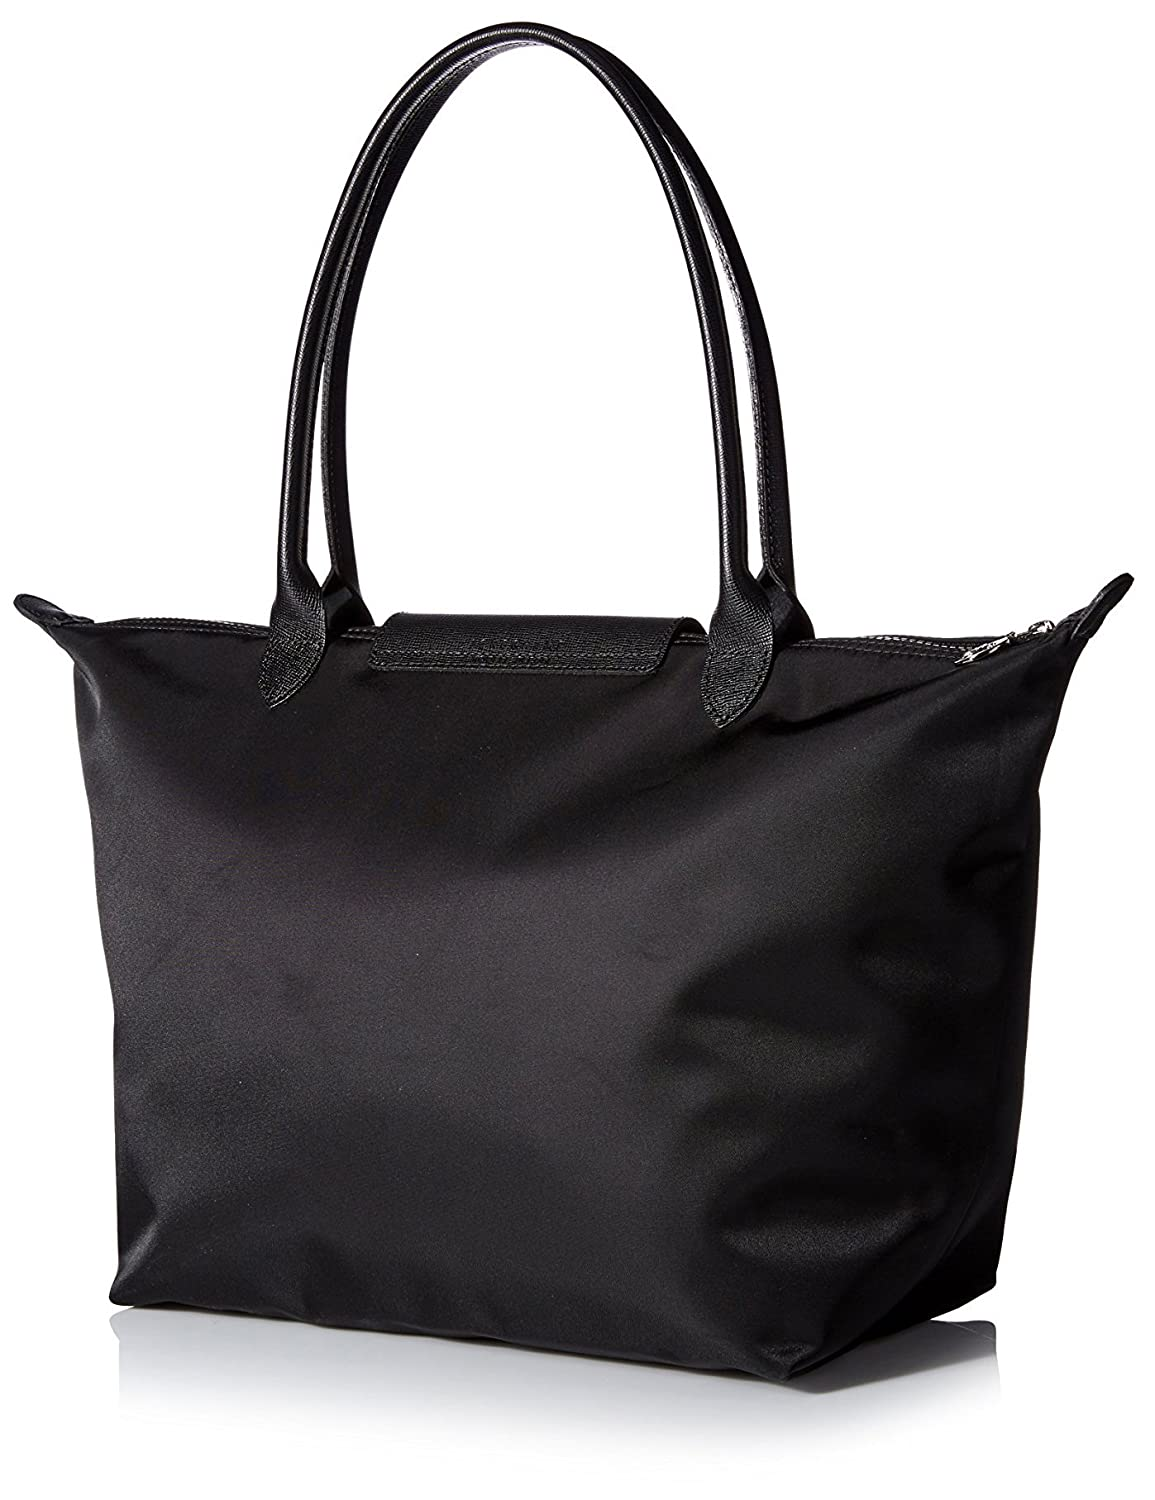 1d1aadb05baa3 Amazon.com  Longchamp Women s Le Pliage Néo Tote Bag